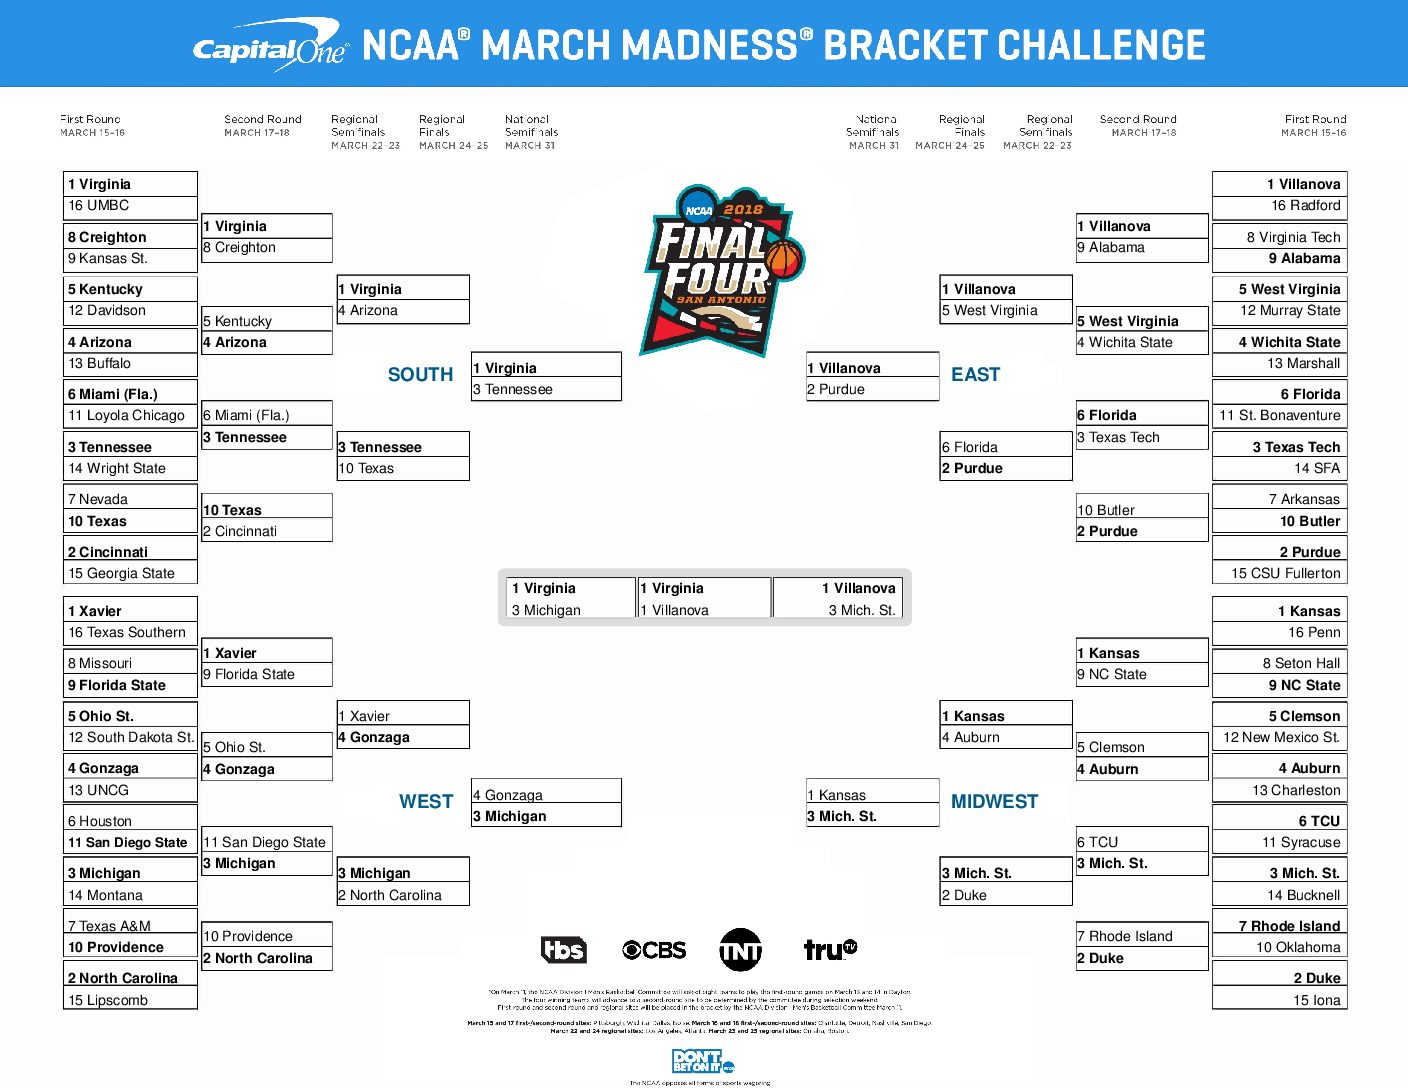 Sure, my bracket is busted, but whose isn't!